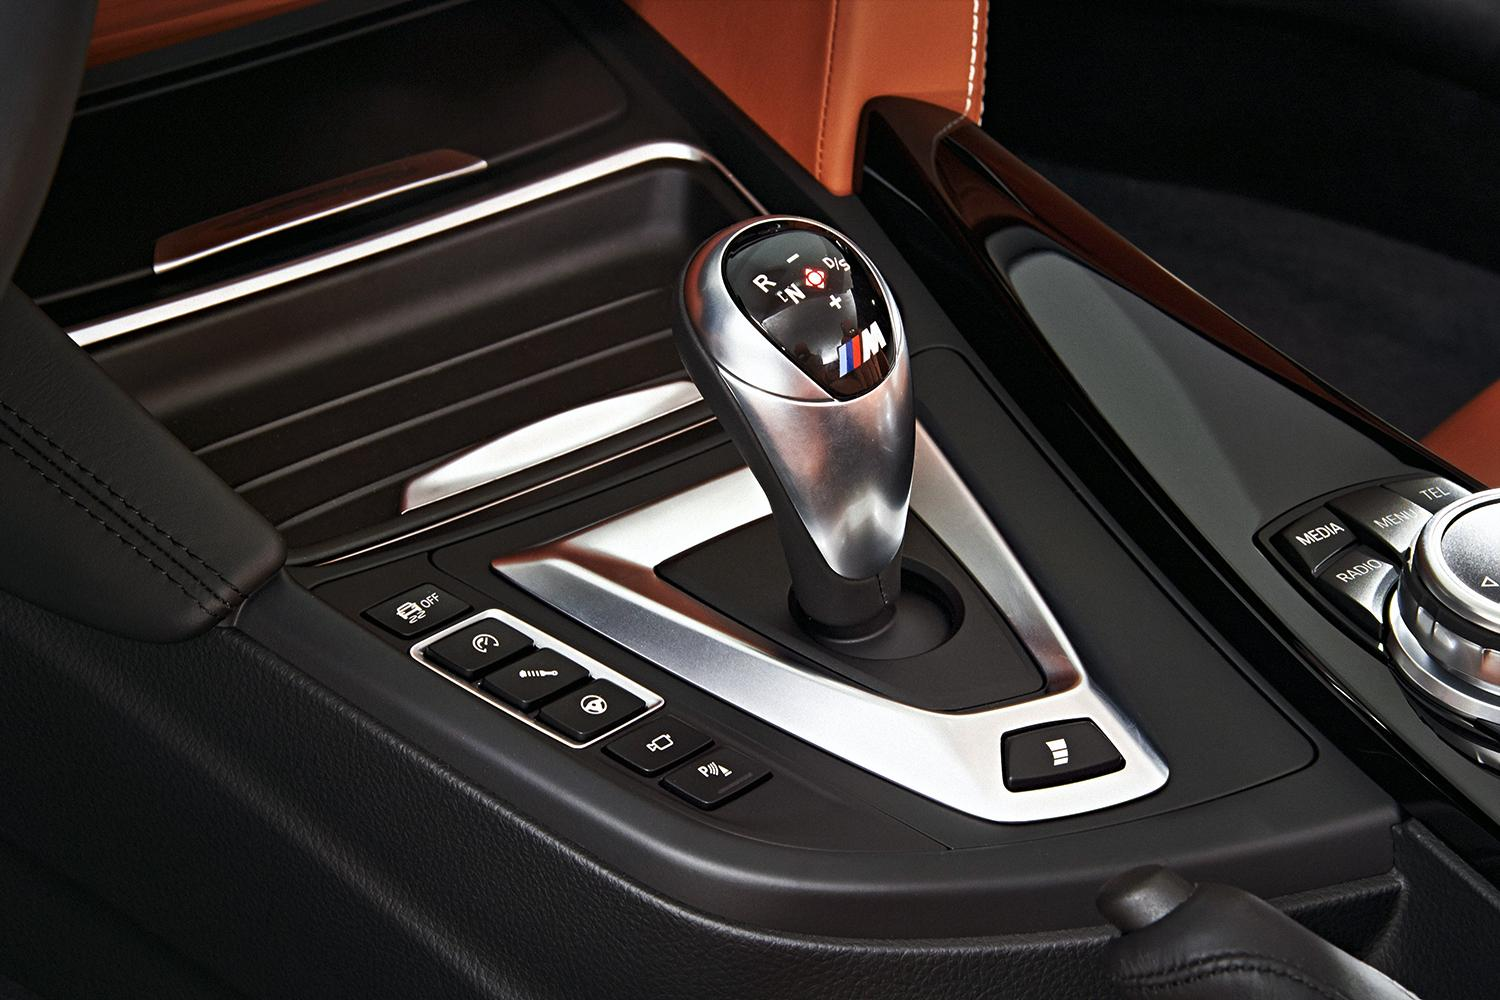 The future 'doesn't look bright' for manual transmissions, says